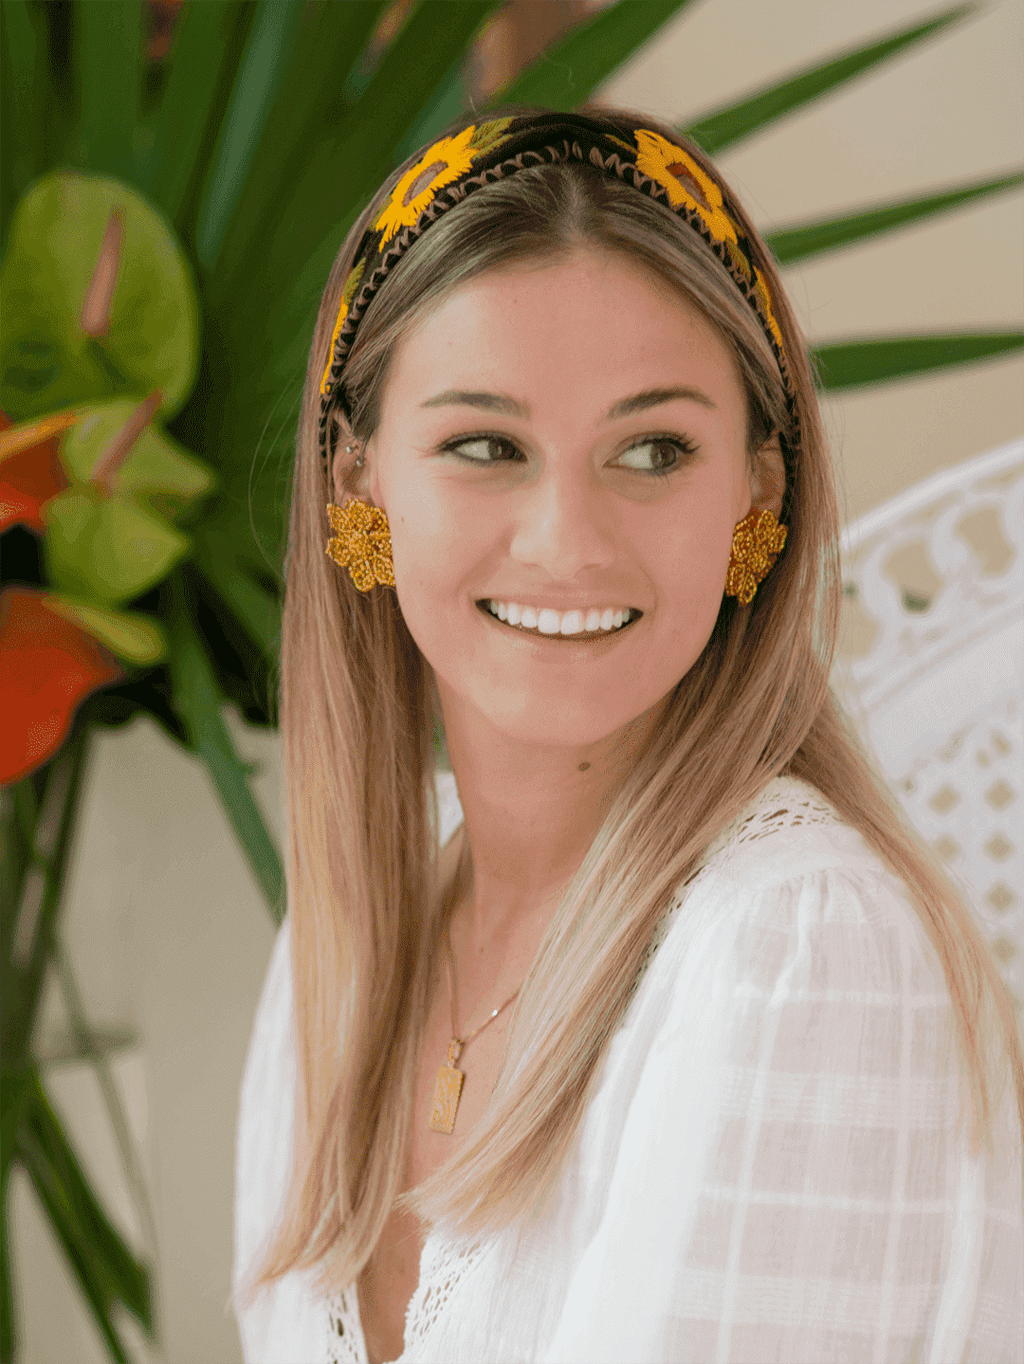 Cinched Headband in Black Sunflowers - Josephine Alexander Collective